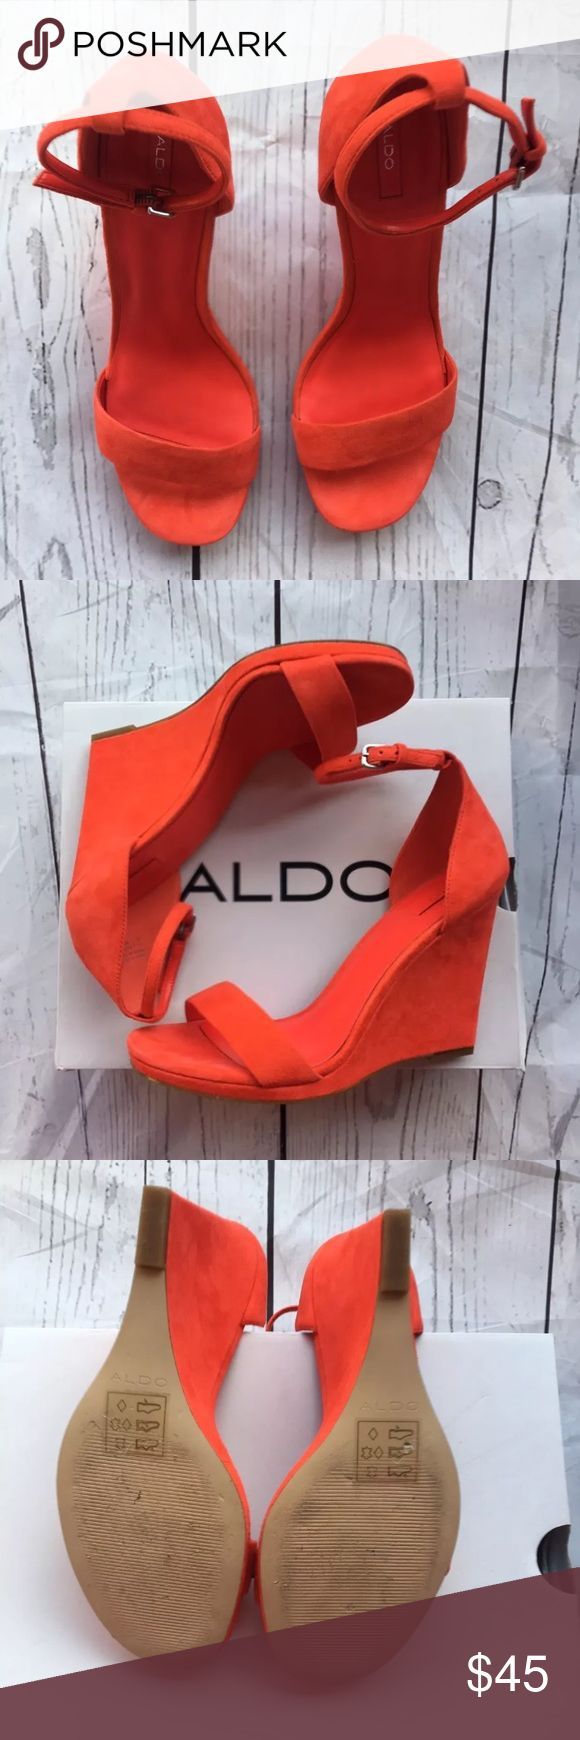 """Aldo Elley orange wedges Suede orange strap ankle wedges. Heel 4"""". Worn only ones. P.S. I'm only selling because I can't walk in them. But I very much love them. 😒😒😒😒 Aldo Shoes Wedges"""